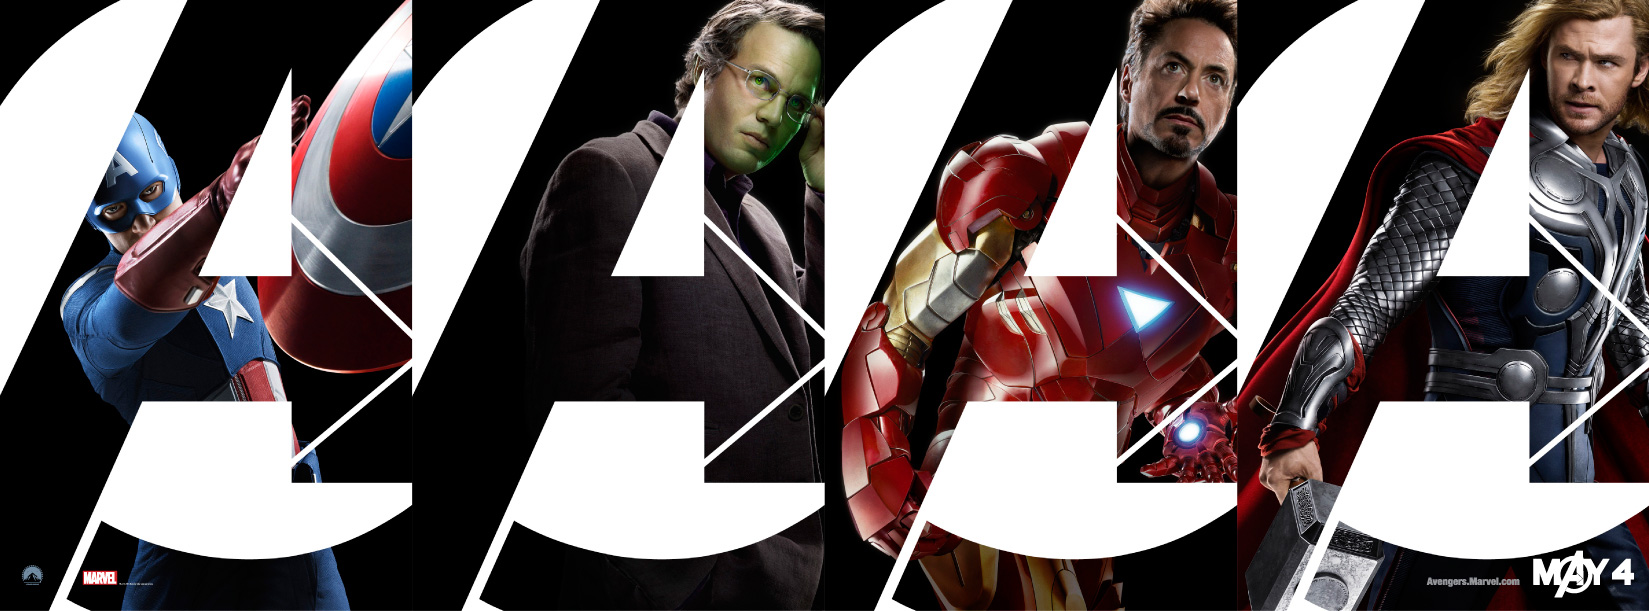 "New ""avengers"" characters and plot details out featuring"